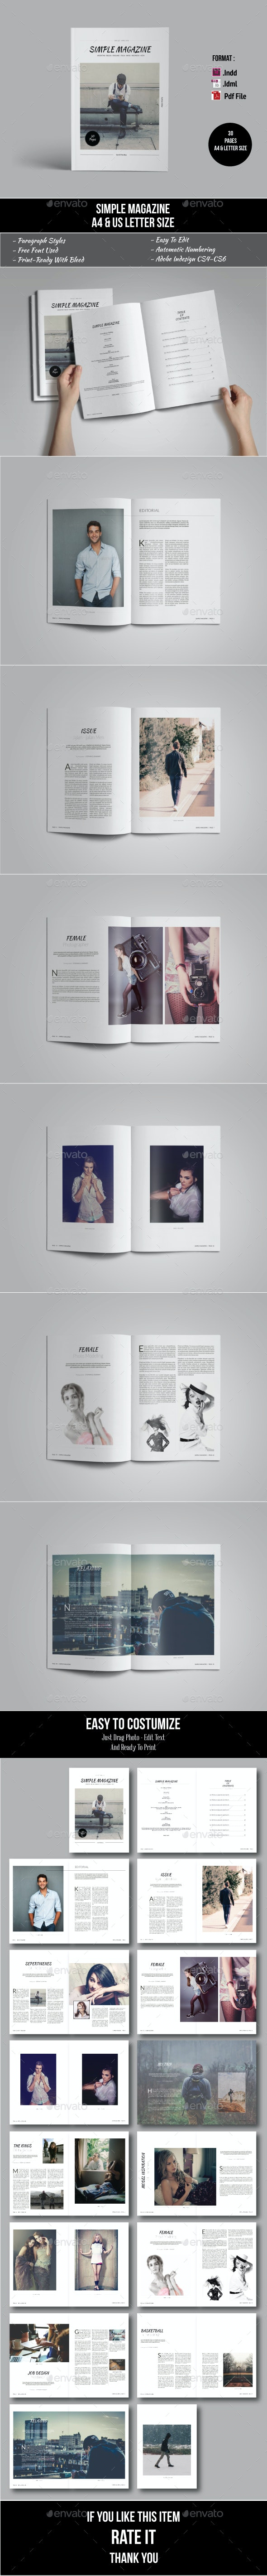 Simple Magazine Template - Magazines Print Templates